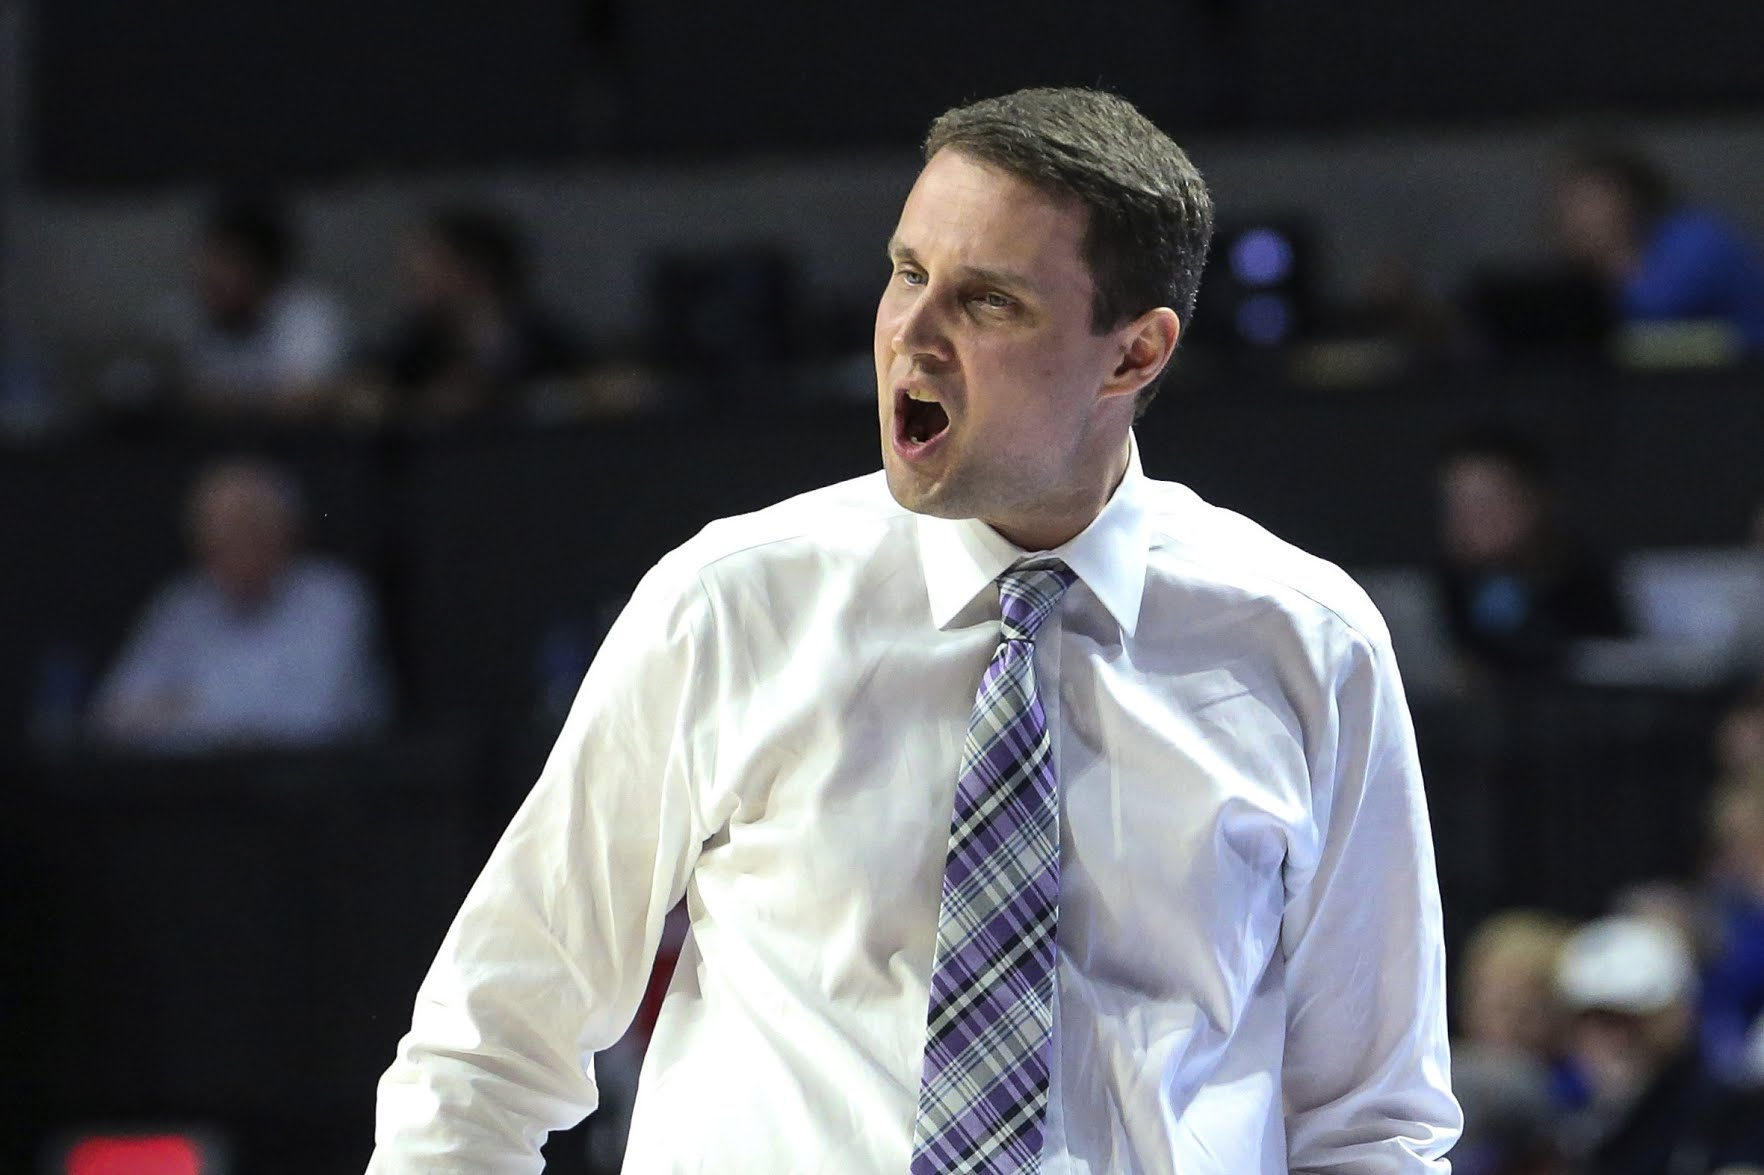 Will Wade will not testify in upcoming NCAA trial